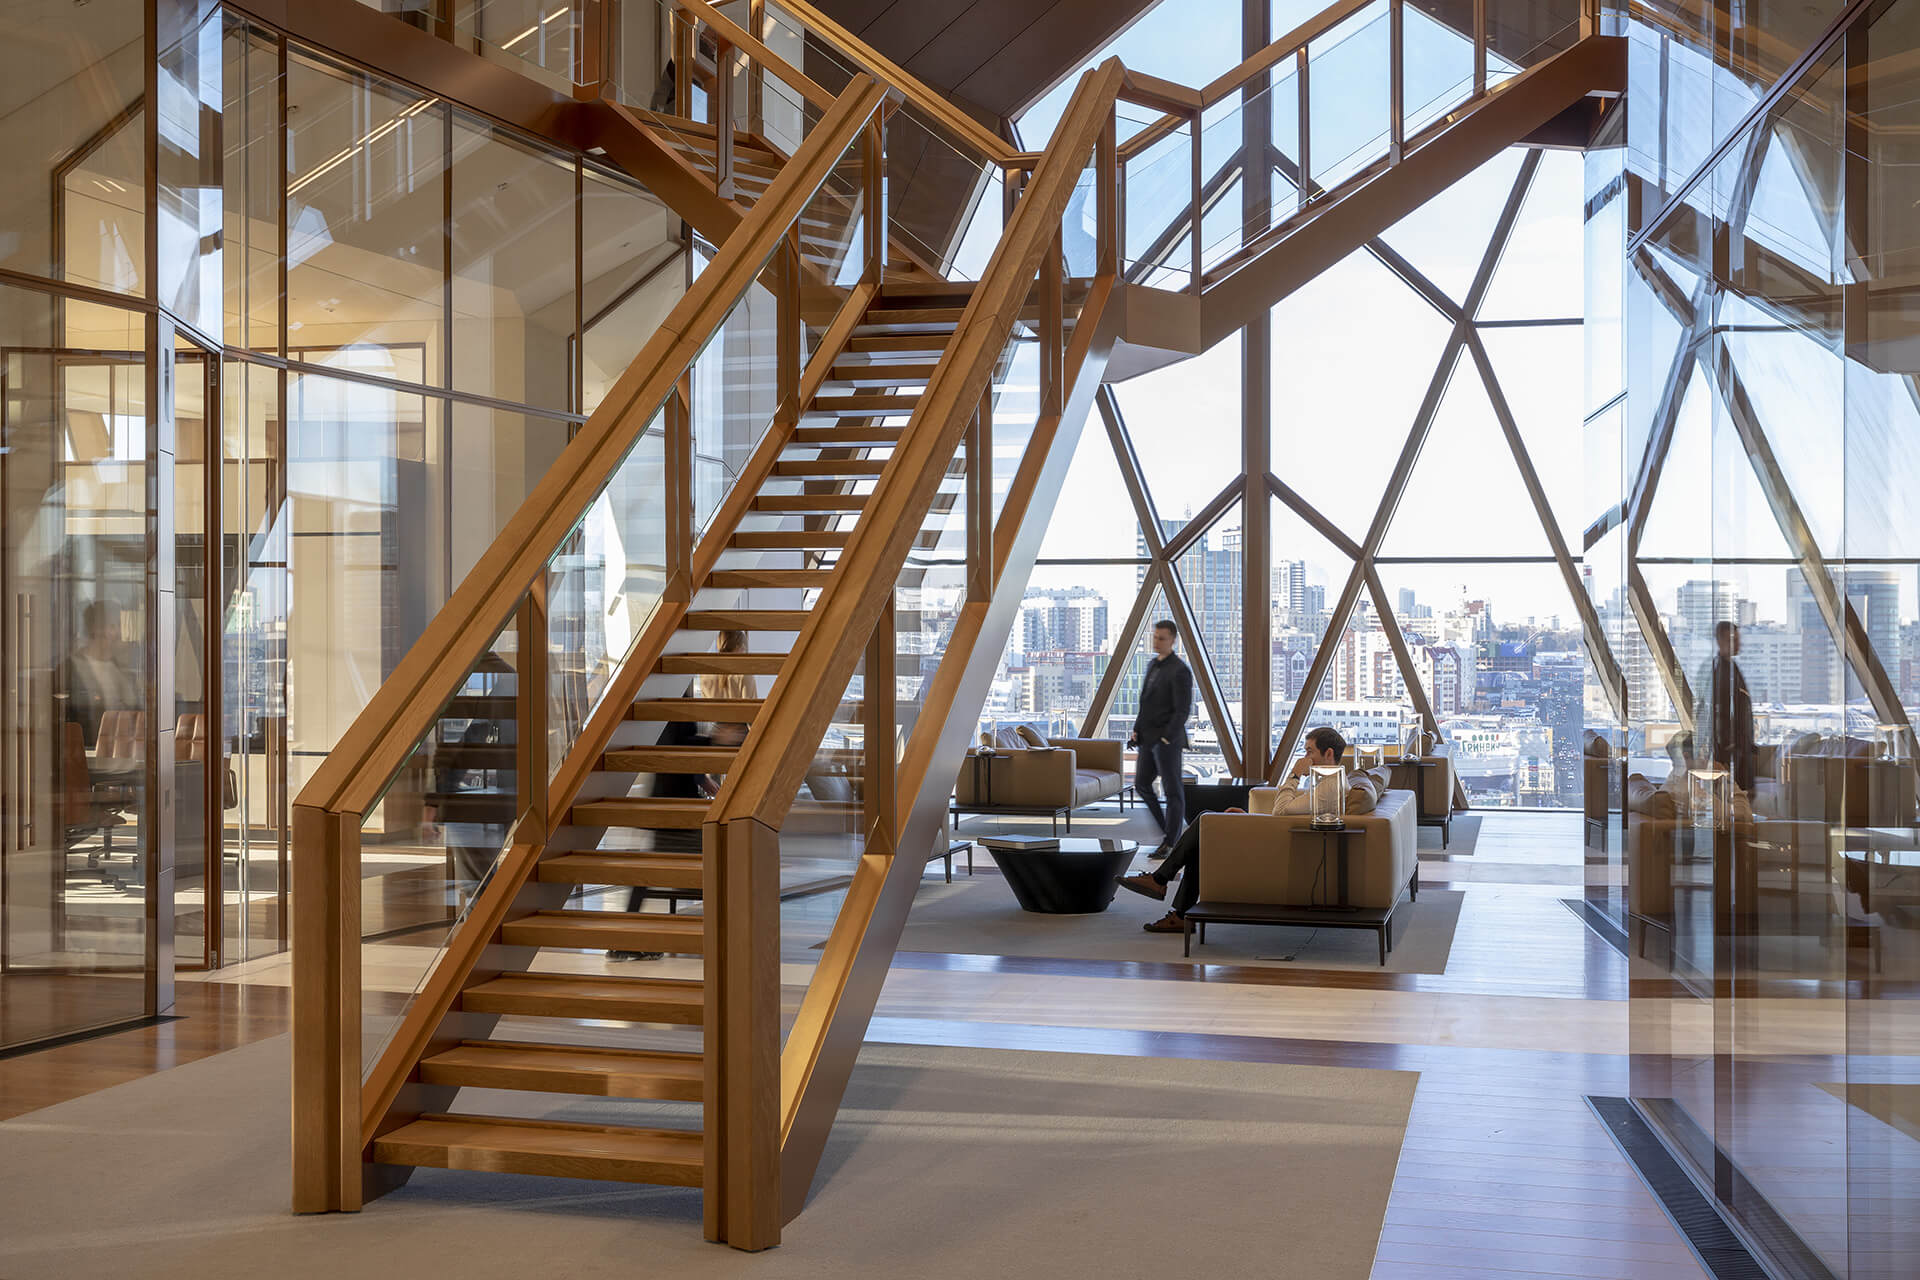 The space features a bifurcated staircase | RCC Headquarters by Foster + Partners | STIRworld